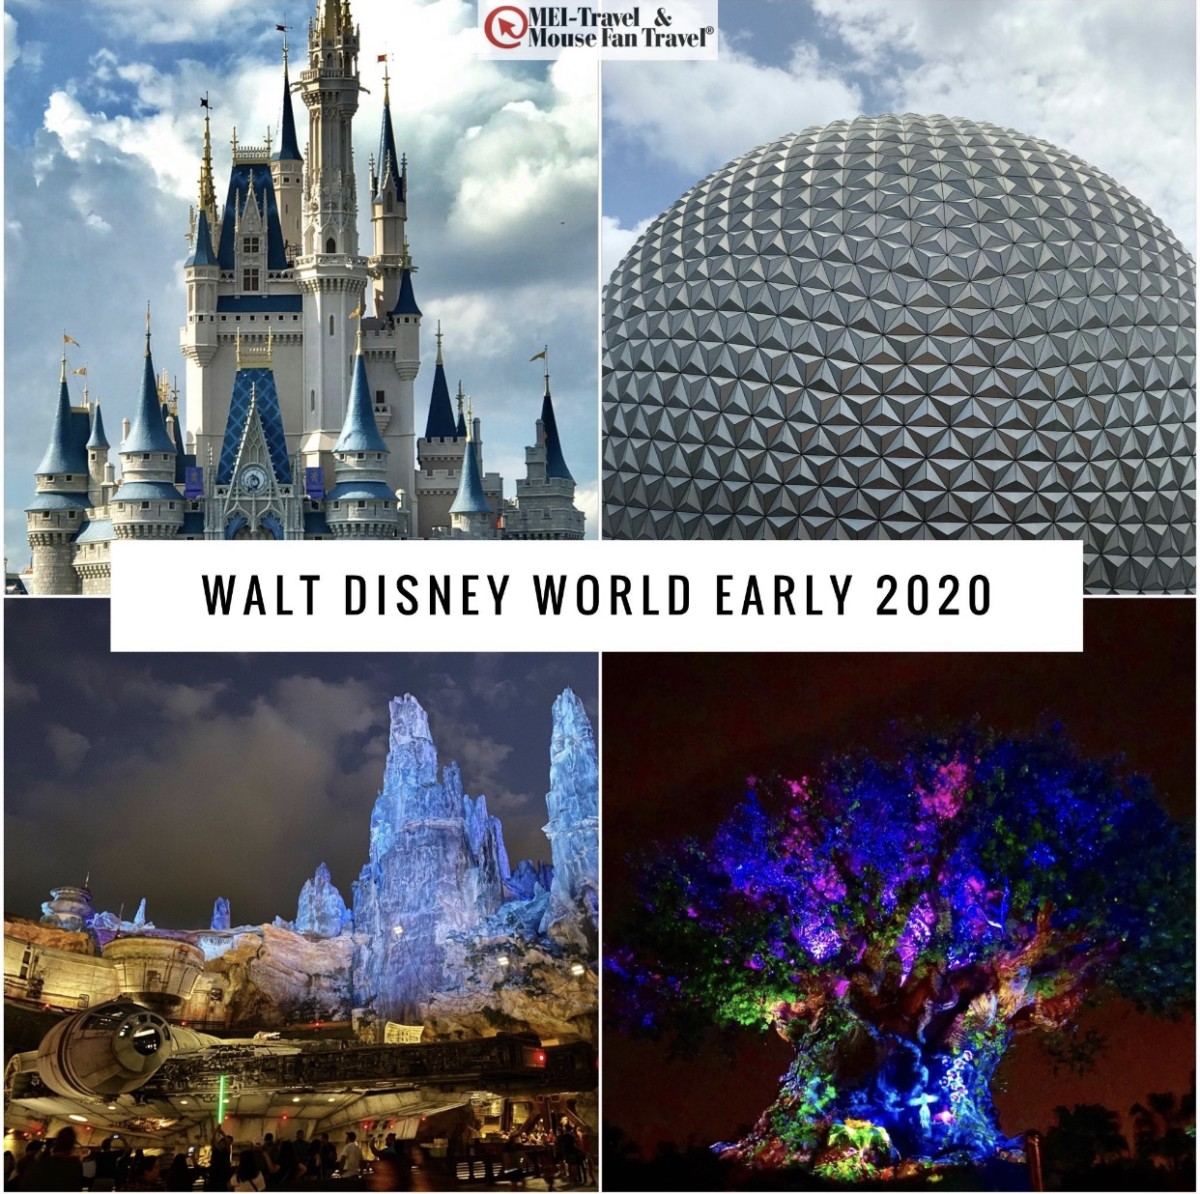 Walt Disney World Early 2020 Offers are Here! 7